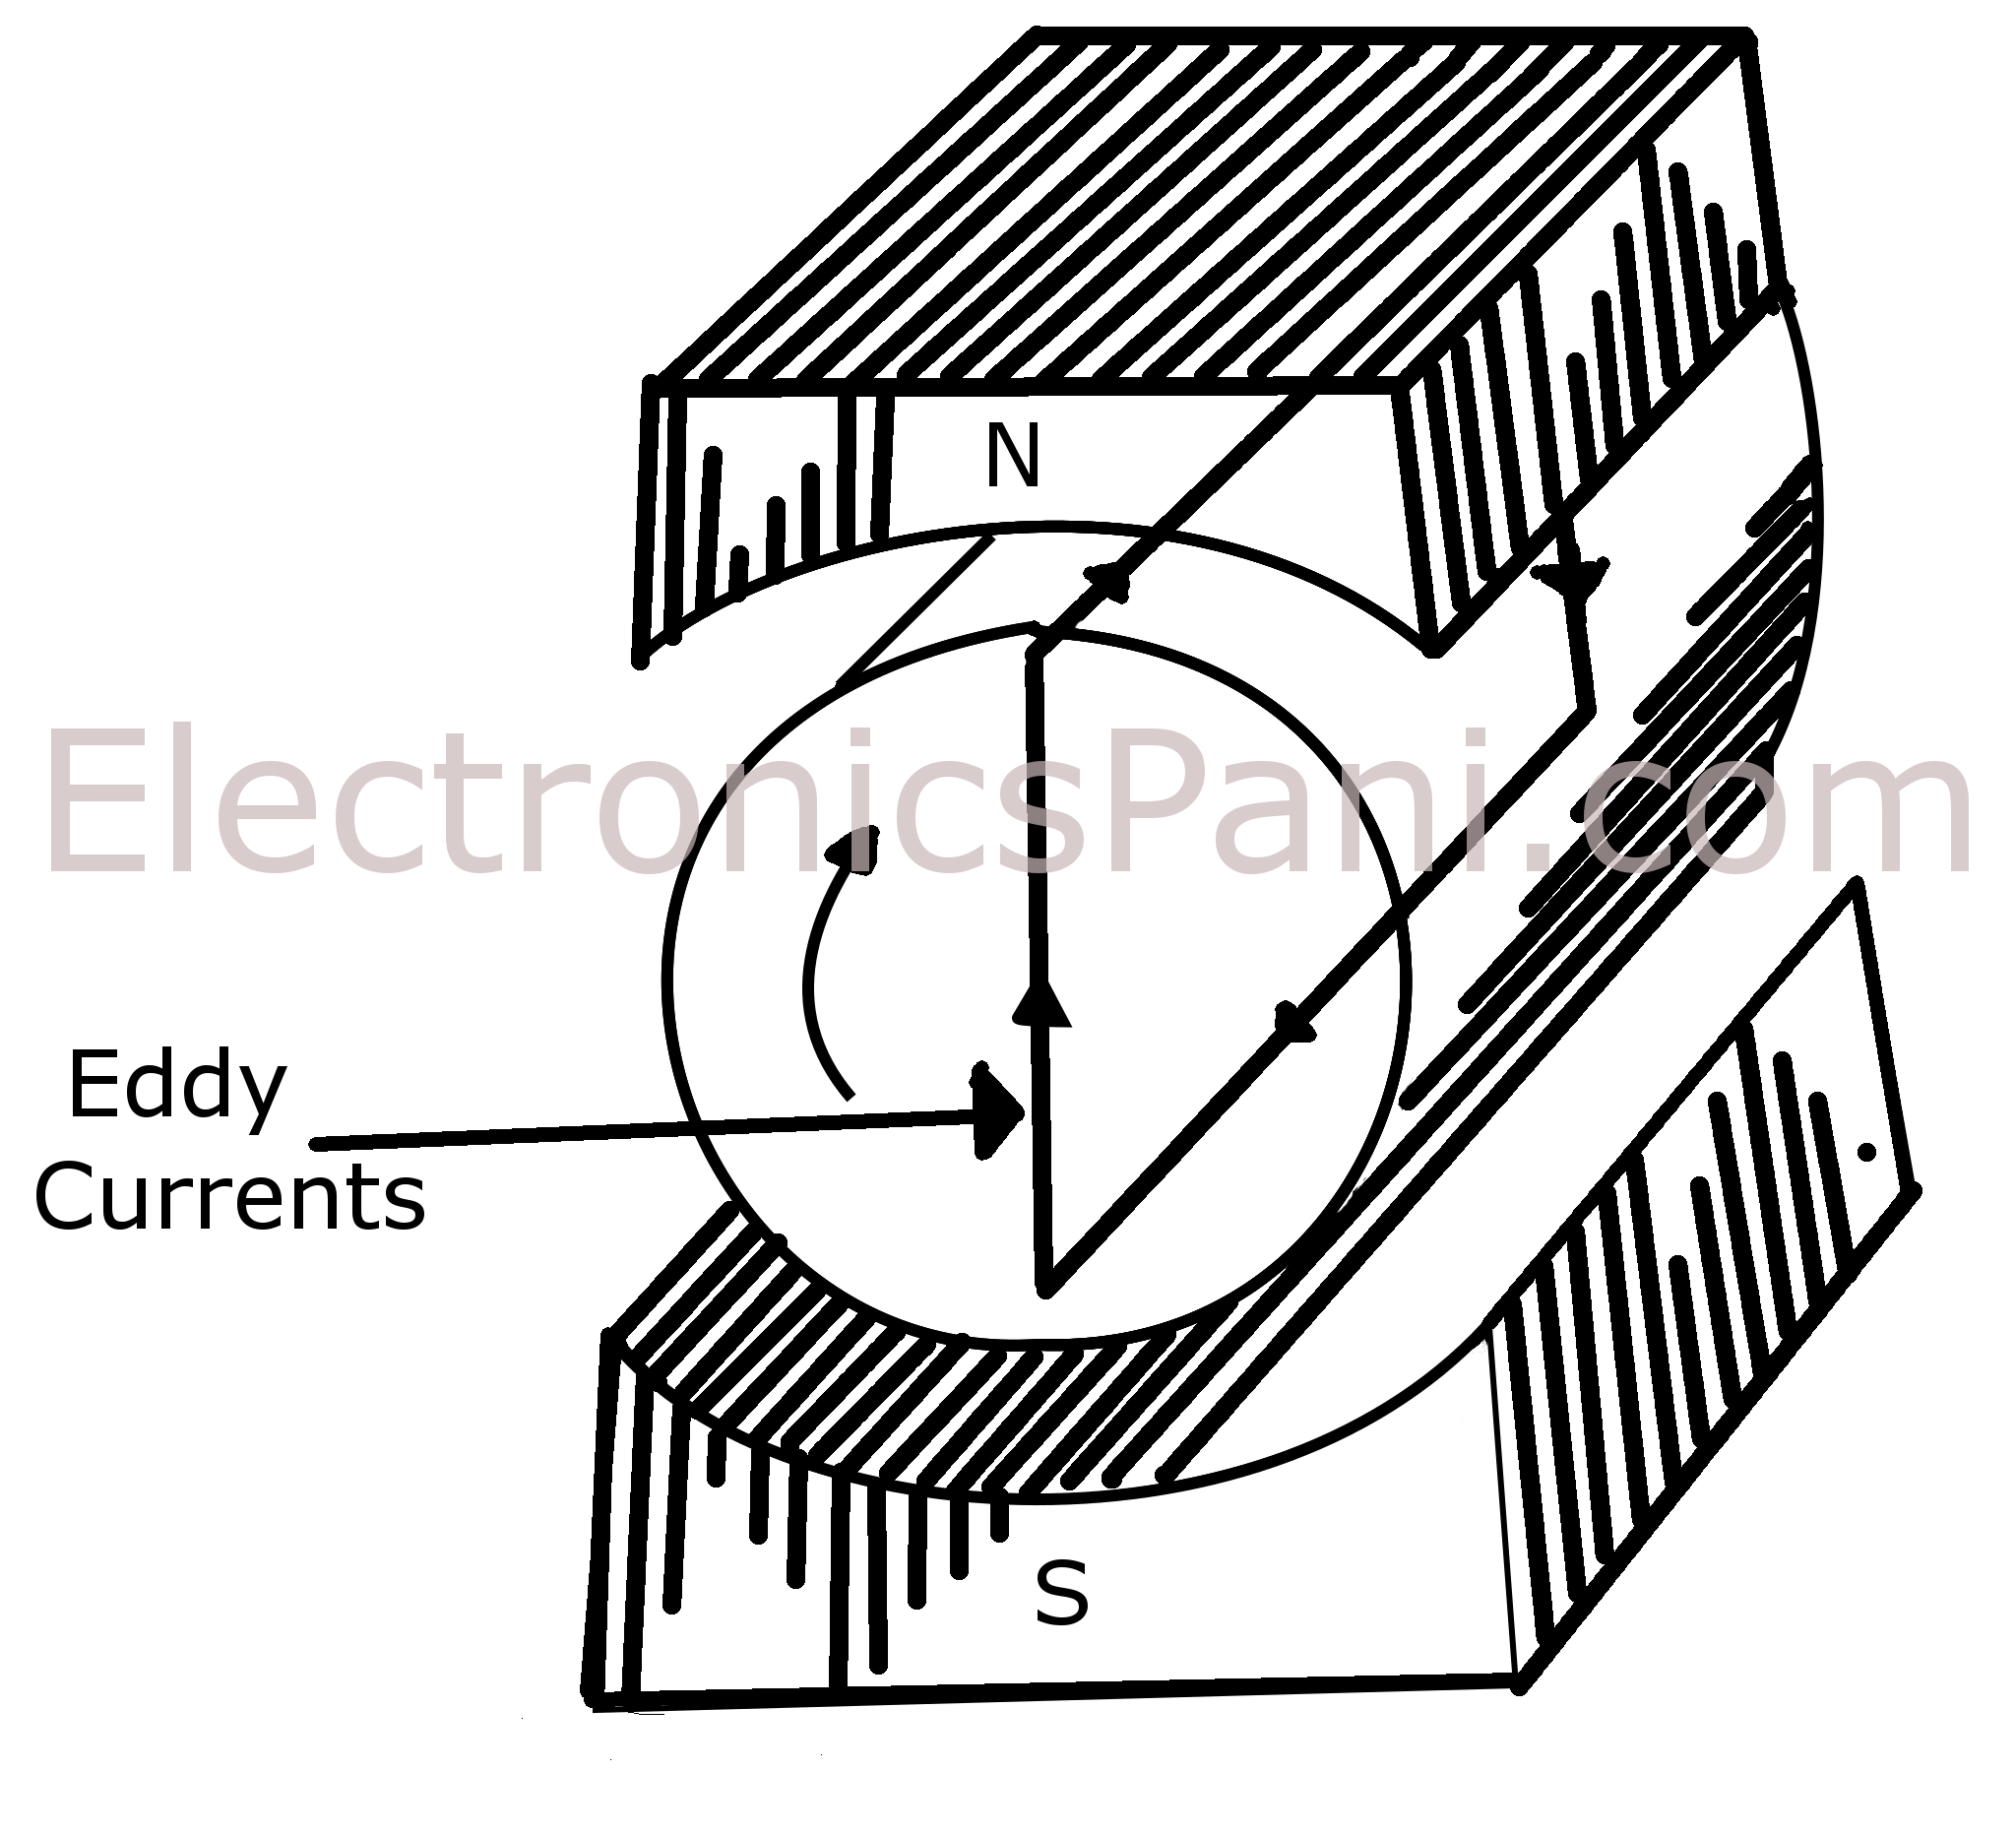 Armature drawing planes. Eddy currents and current